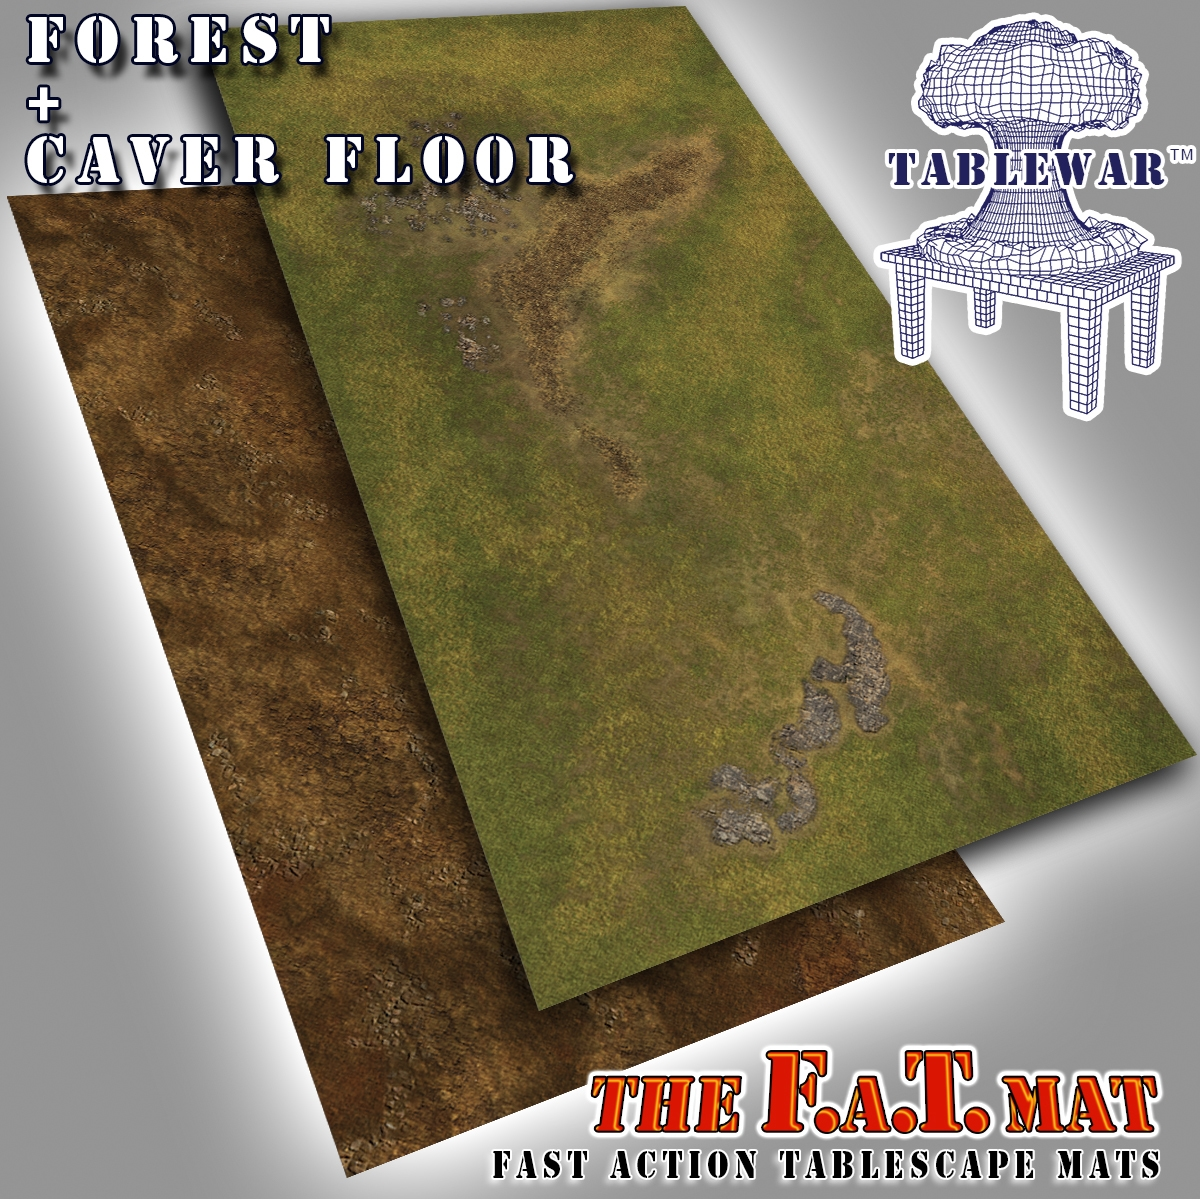 F.A.T. Mats: Forest + Cave Floor 6×3